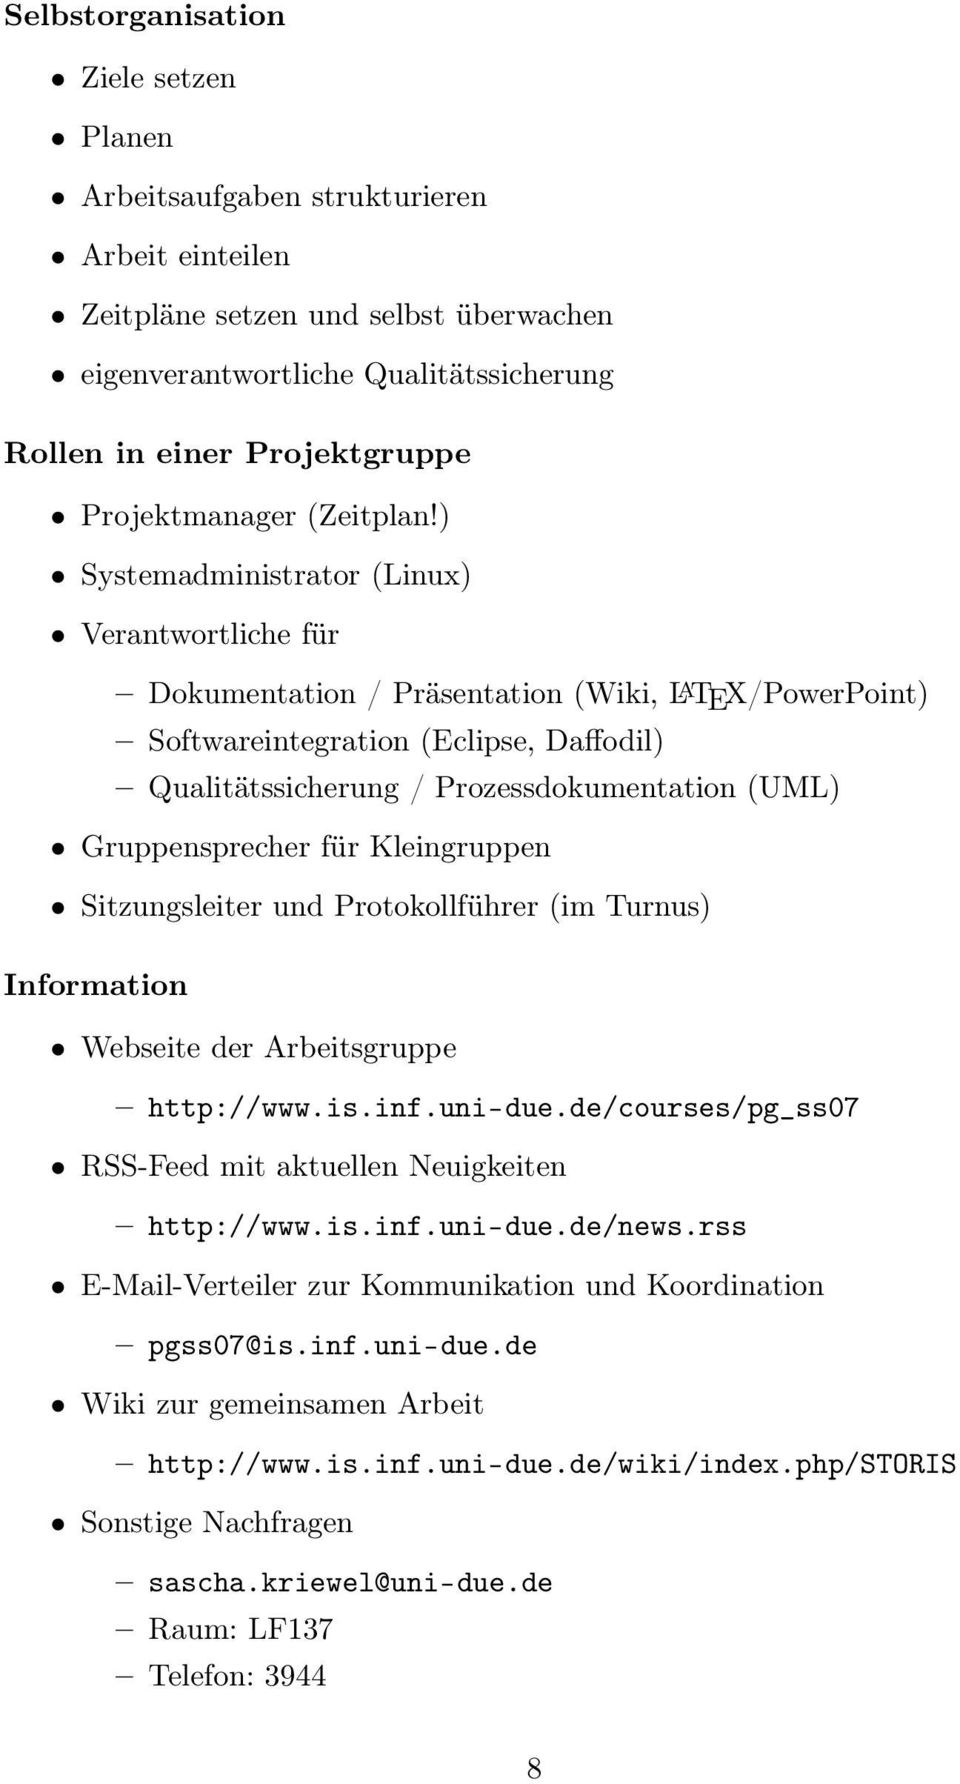 ) Systemadministrator (Linux) Verantwortliche für Dokumentation / Präsentation (Wiki, L A TEX/PowerPoint) Softwareintegration (Eclipse, Daffodil) Qualitätssicherung / Prozessdokumentation (UML)